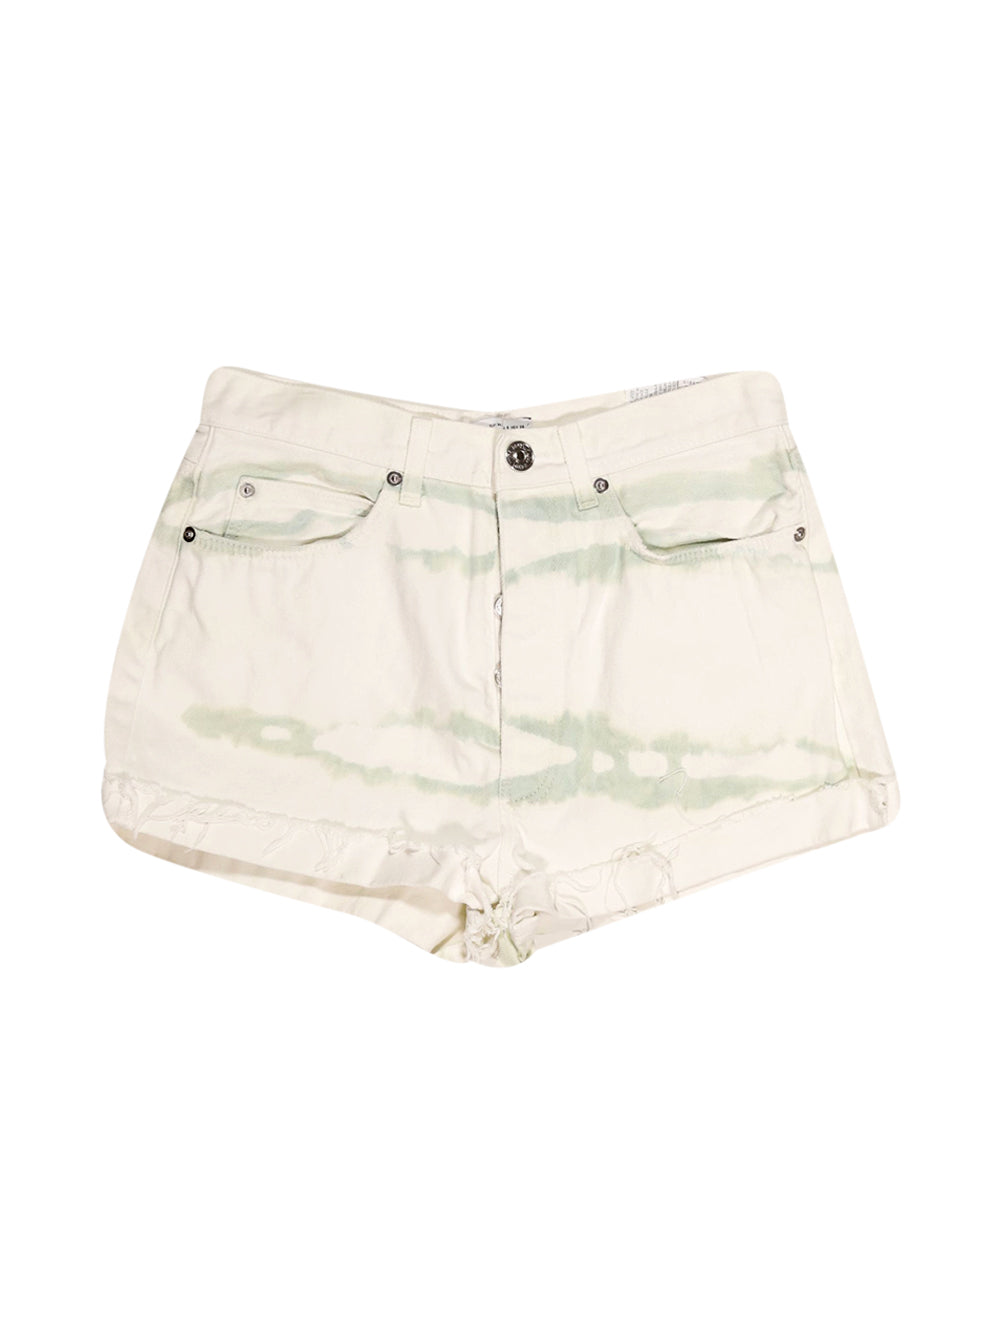 Front photo of Preloved Zara White Woman's shorts - size 10/M